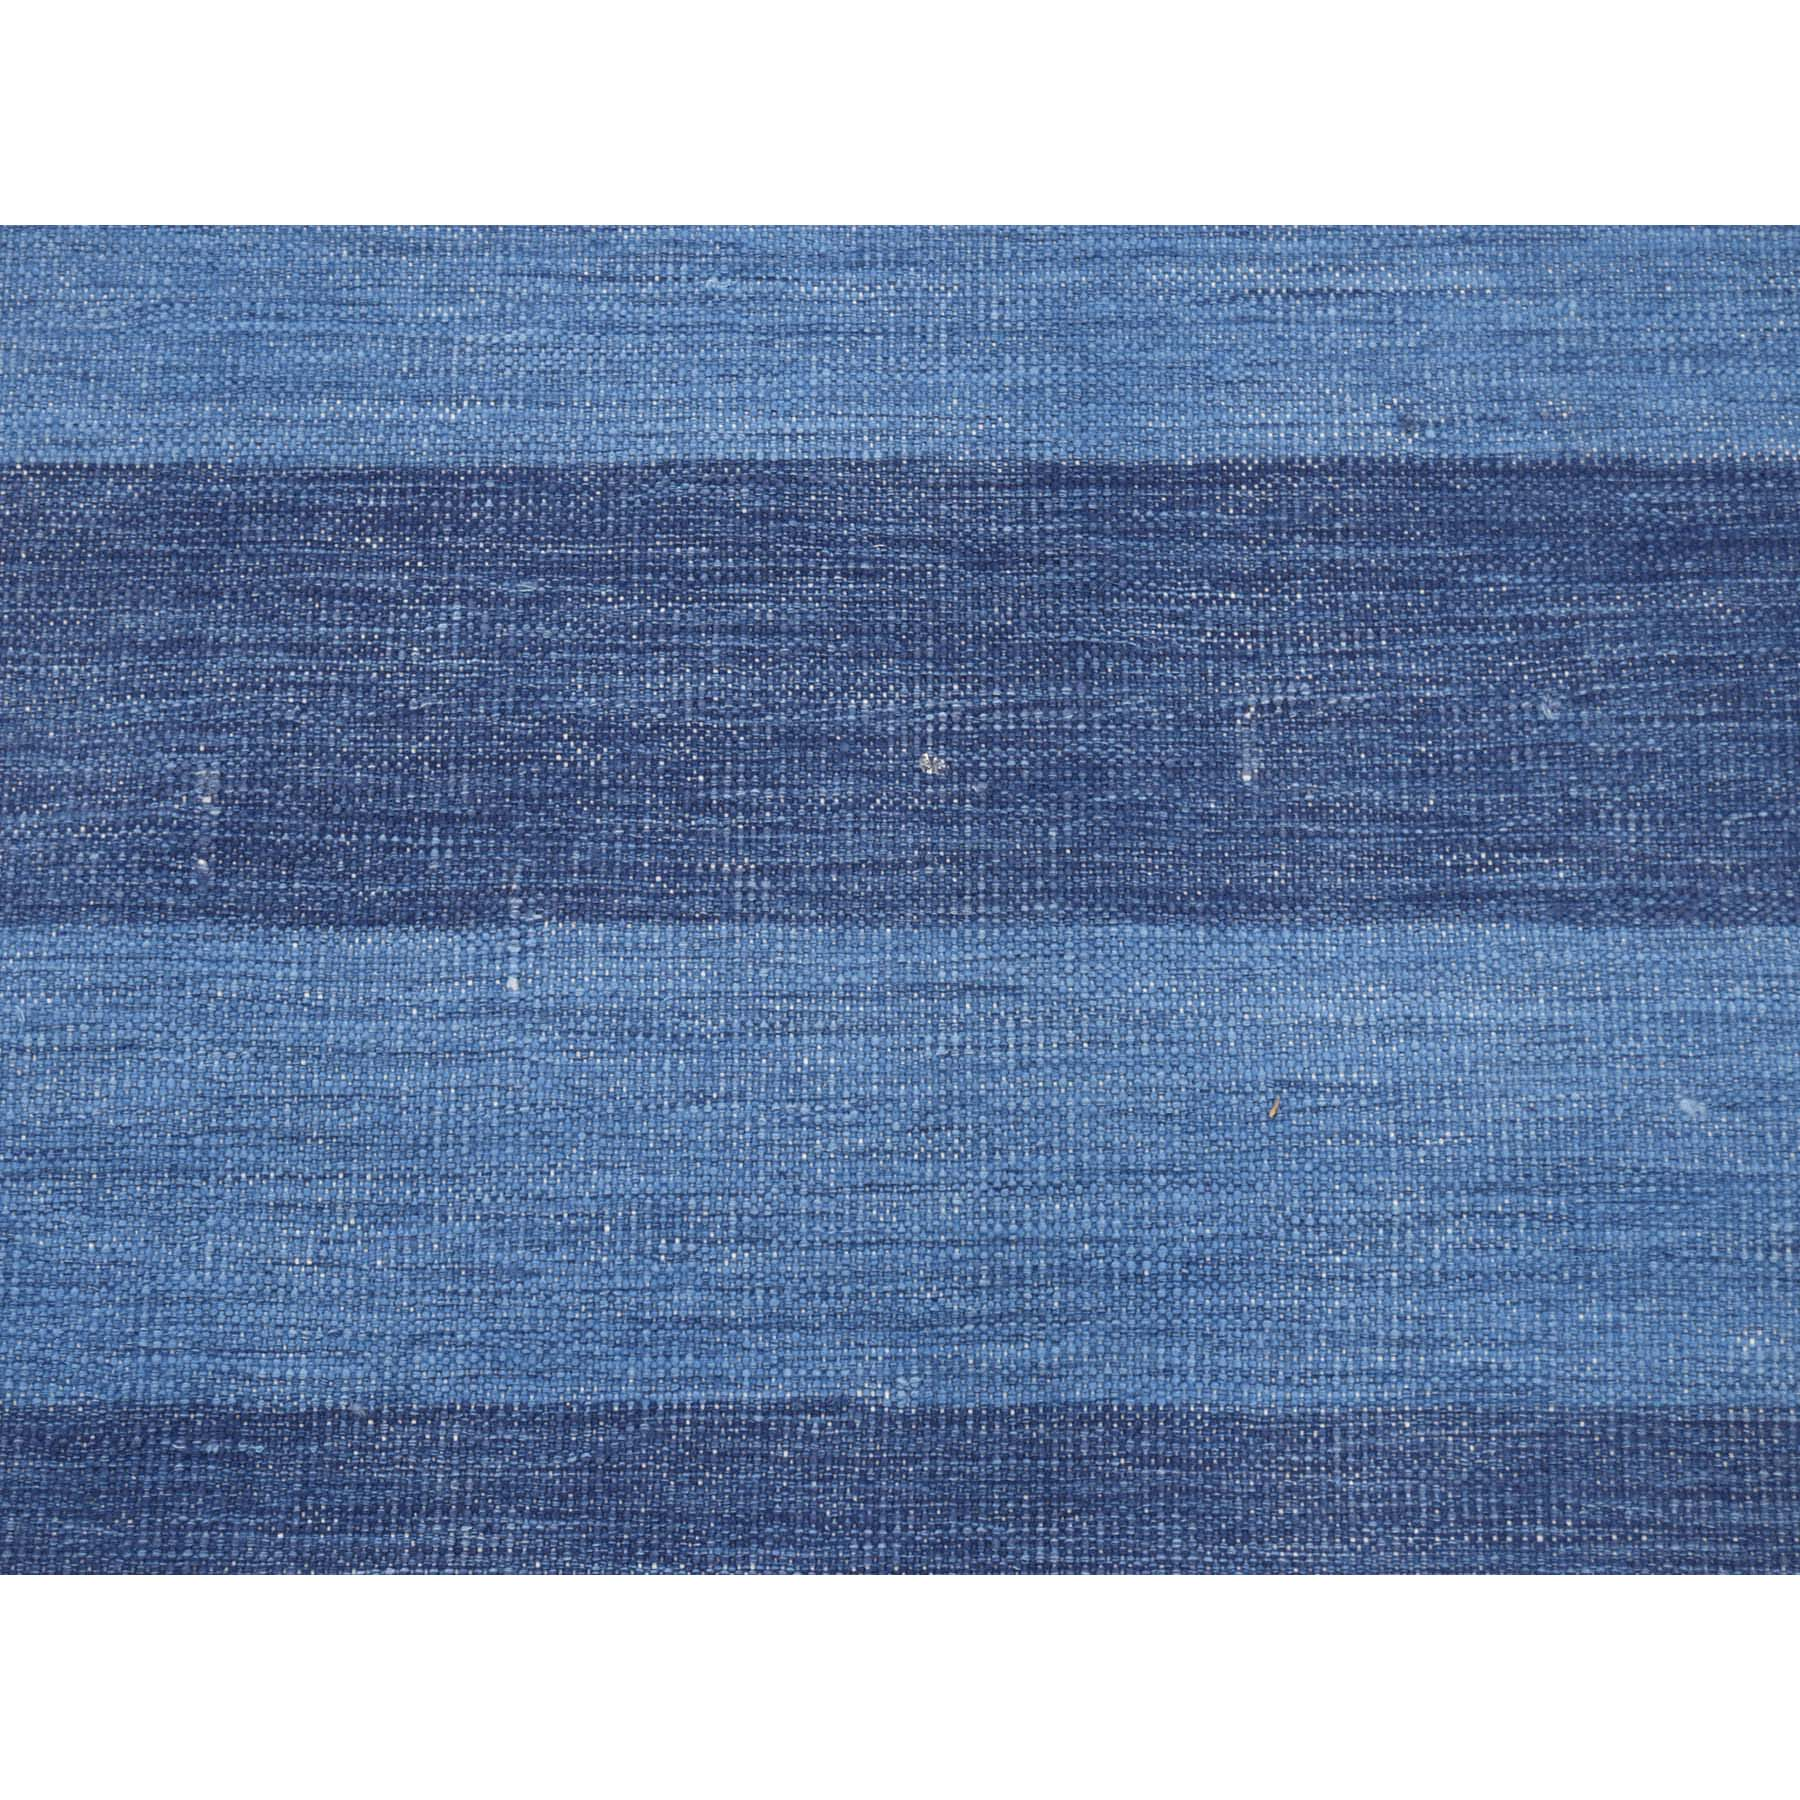 5-3 x7- Reversible Durie Kilim Flat Weave Pure Cotton Hand Woven Oriental Rug